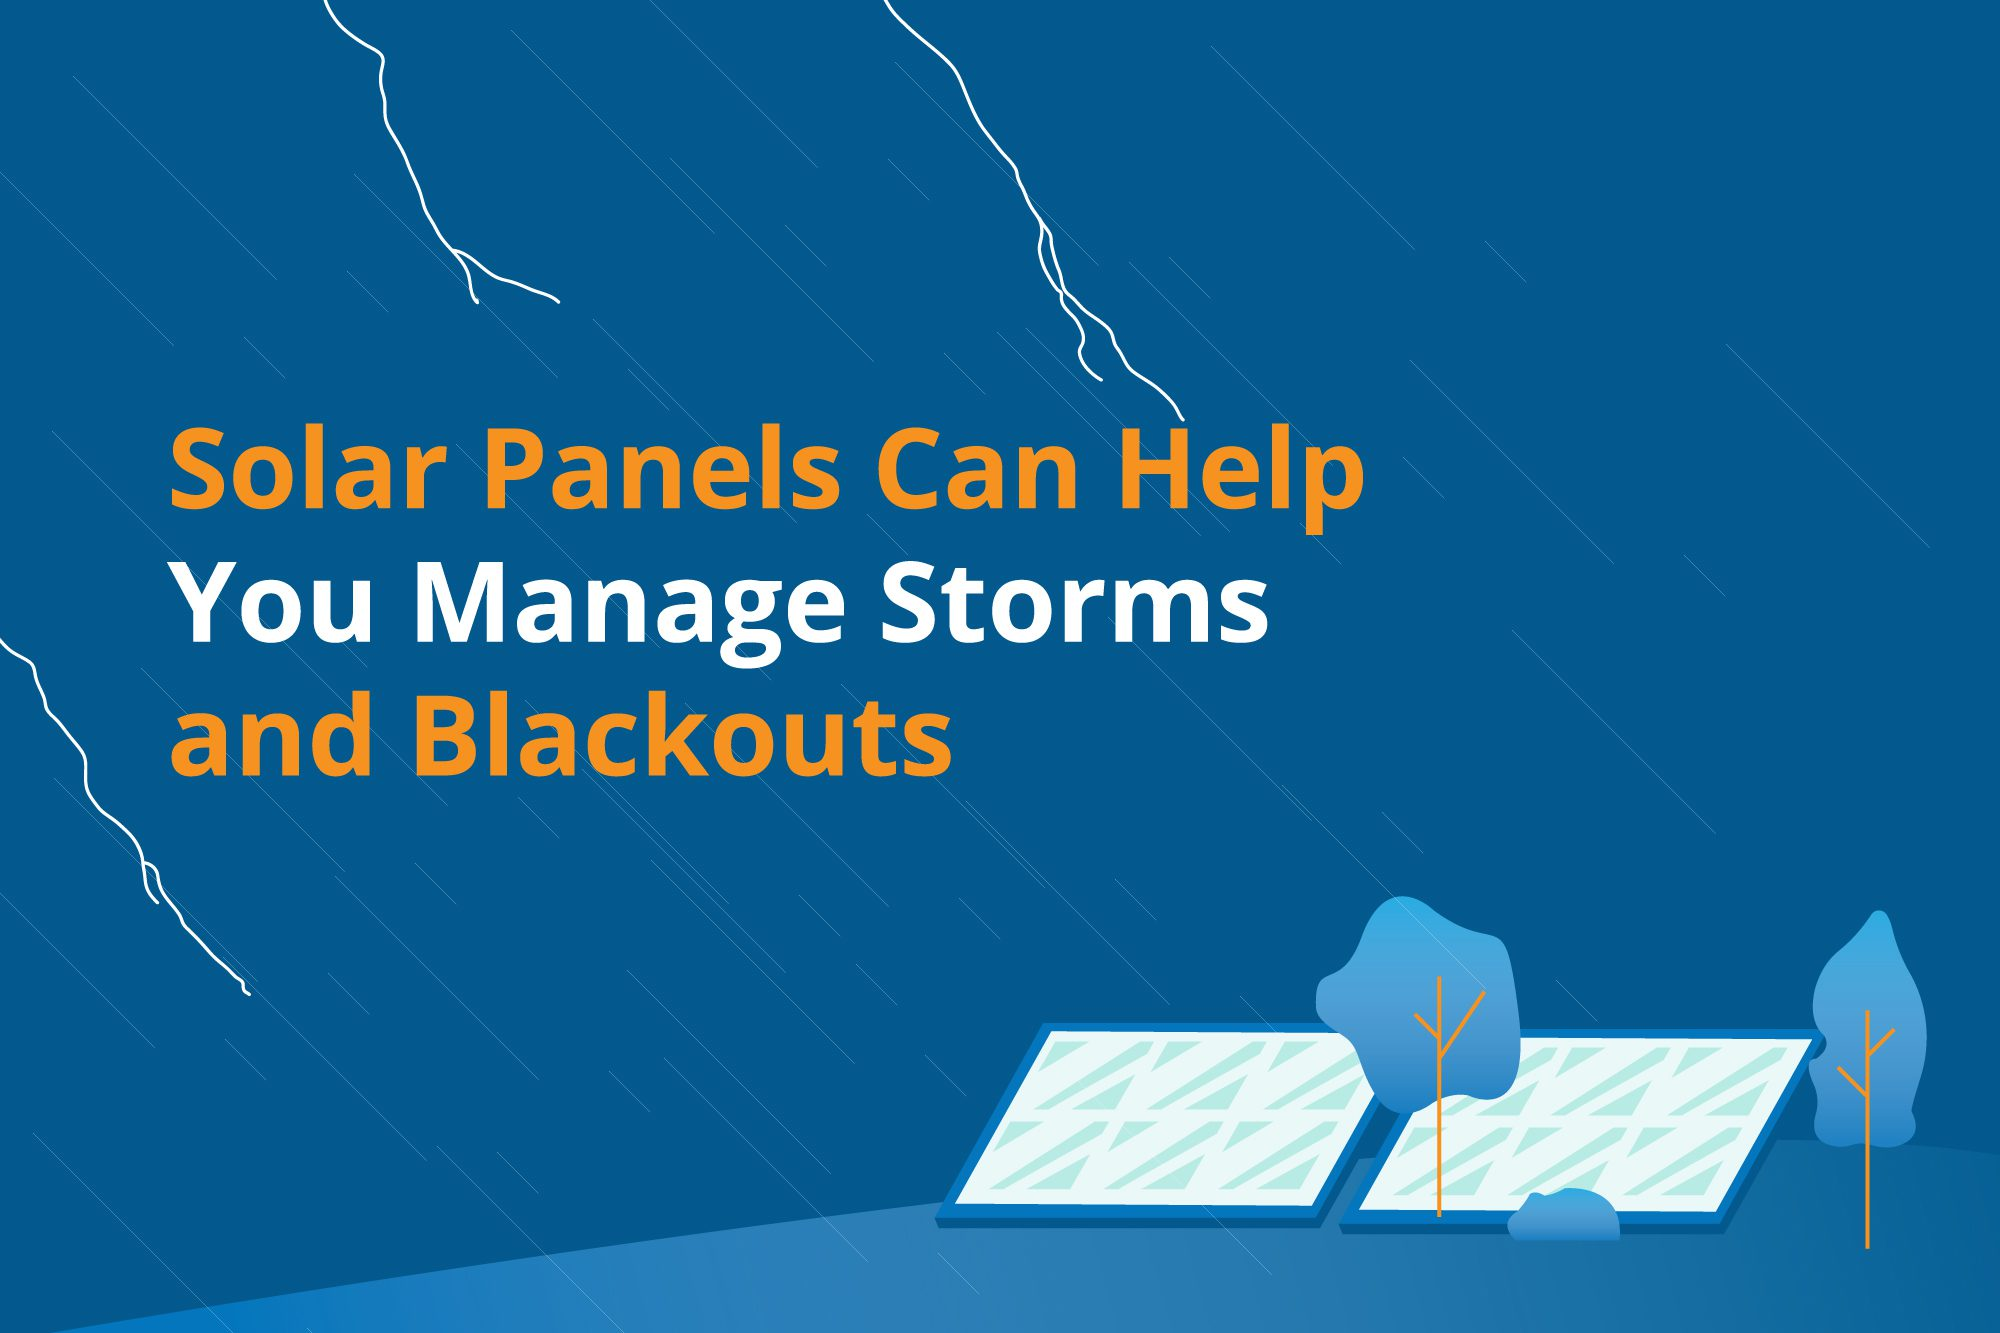 Solar panels can help manage storms